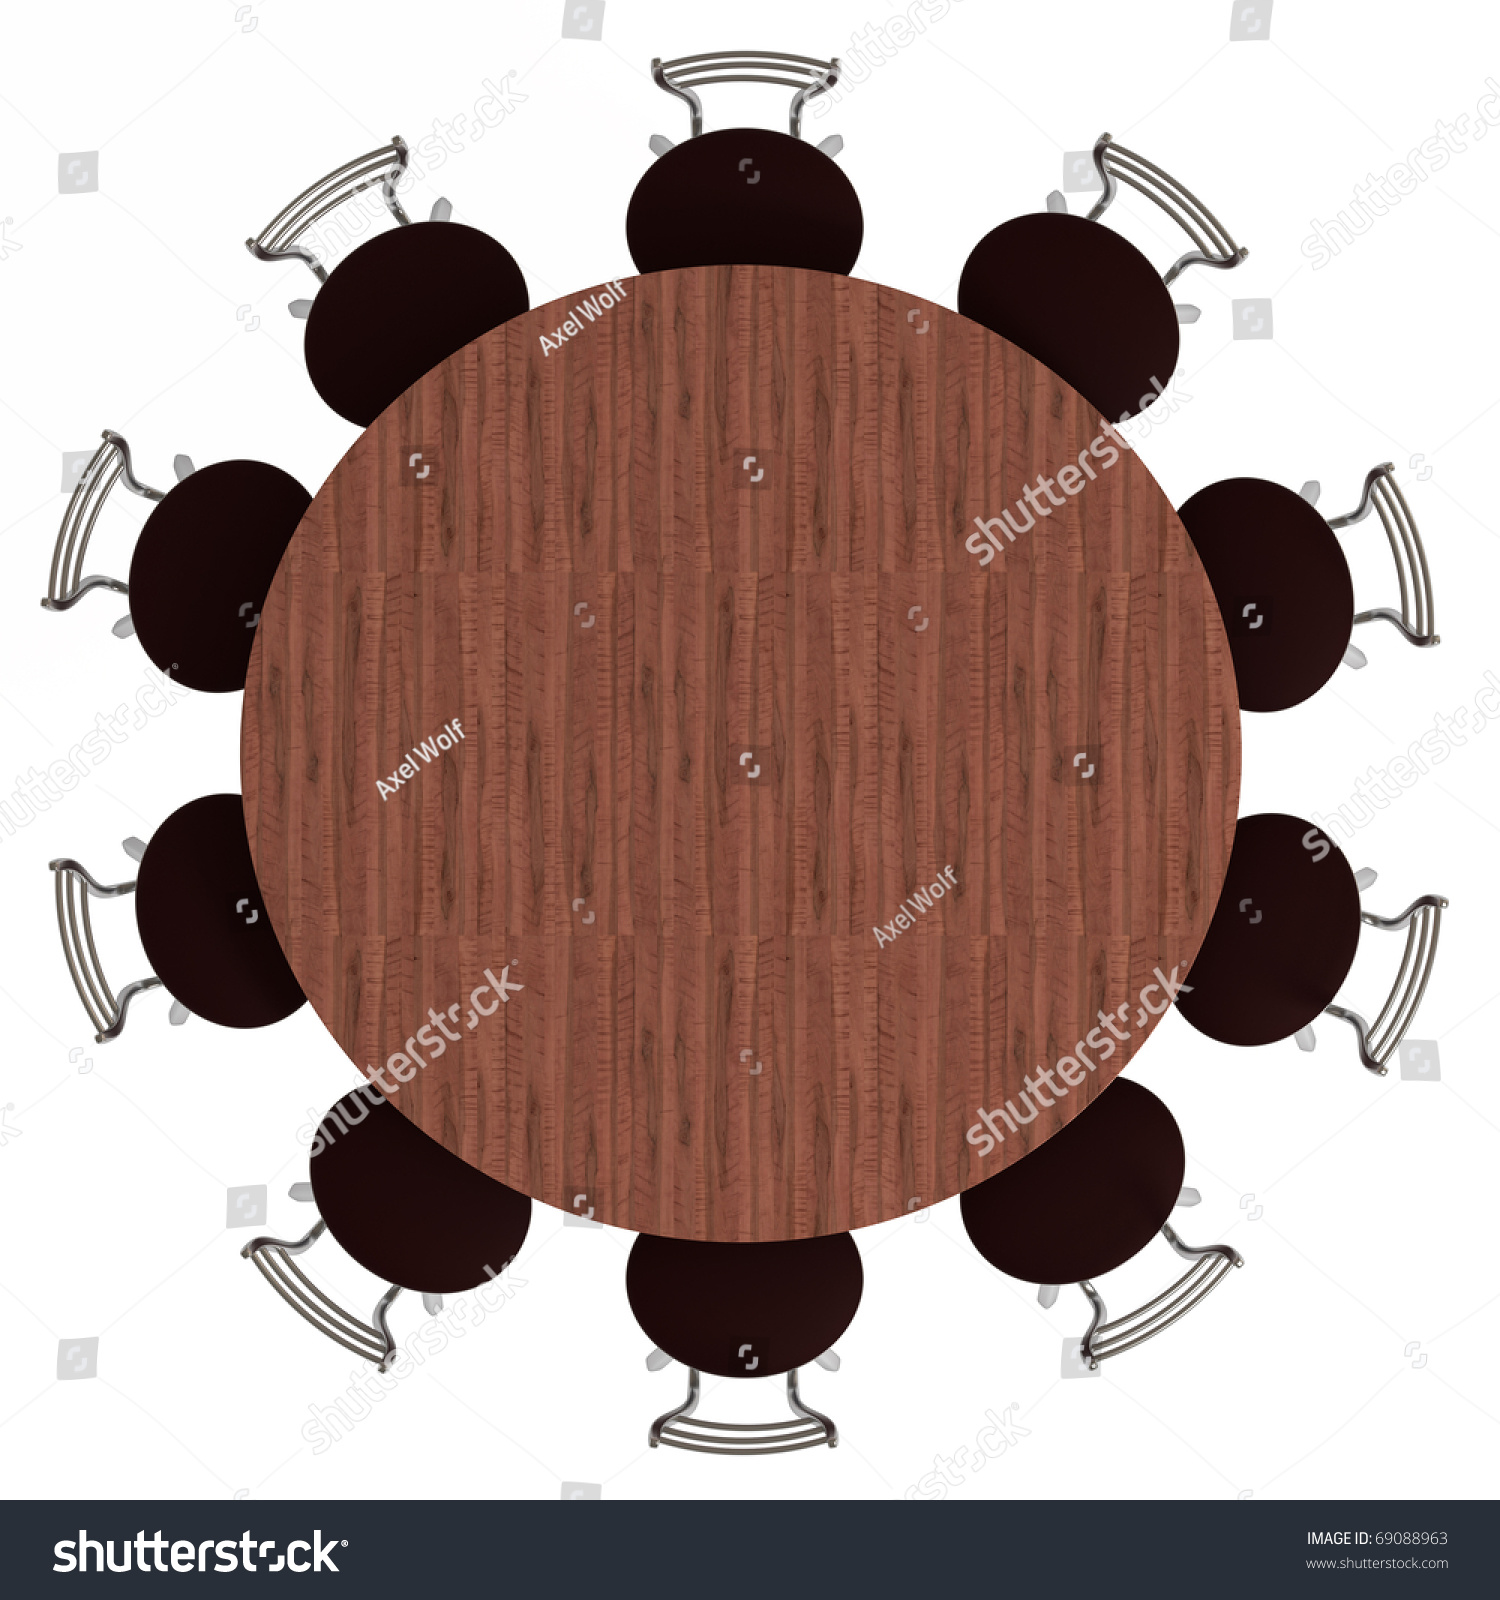 Table and chairs top view - Round Table And Chairs Top View Isolated On White With Clipping Path